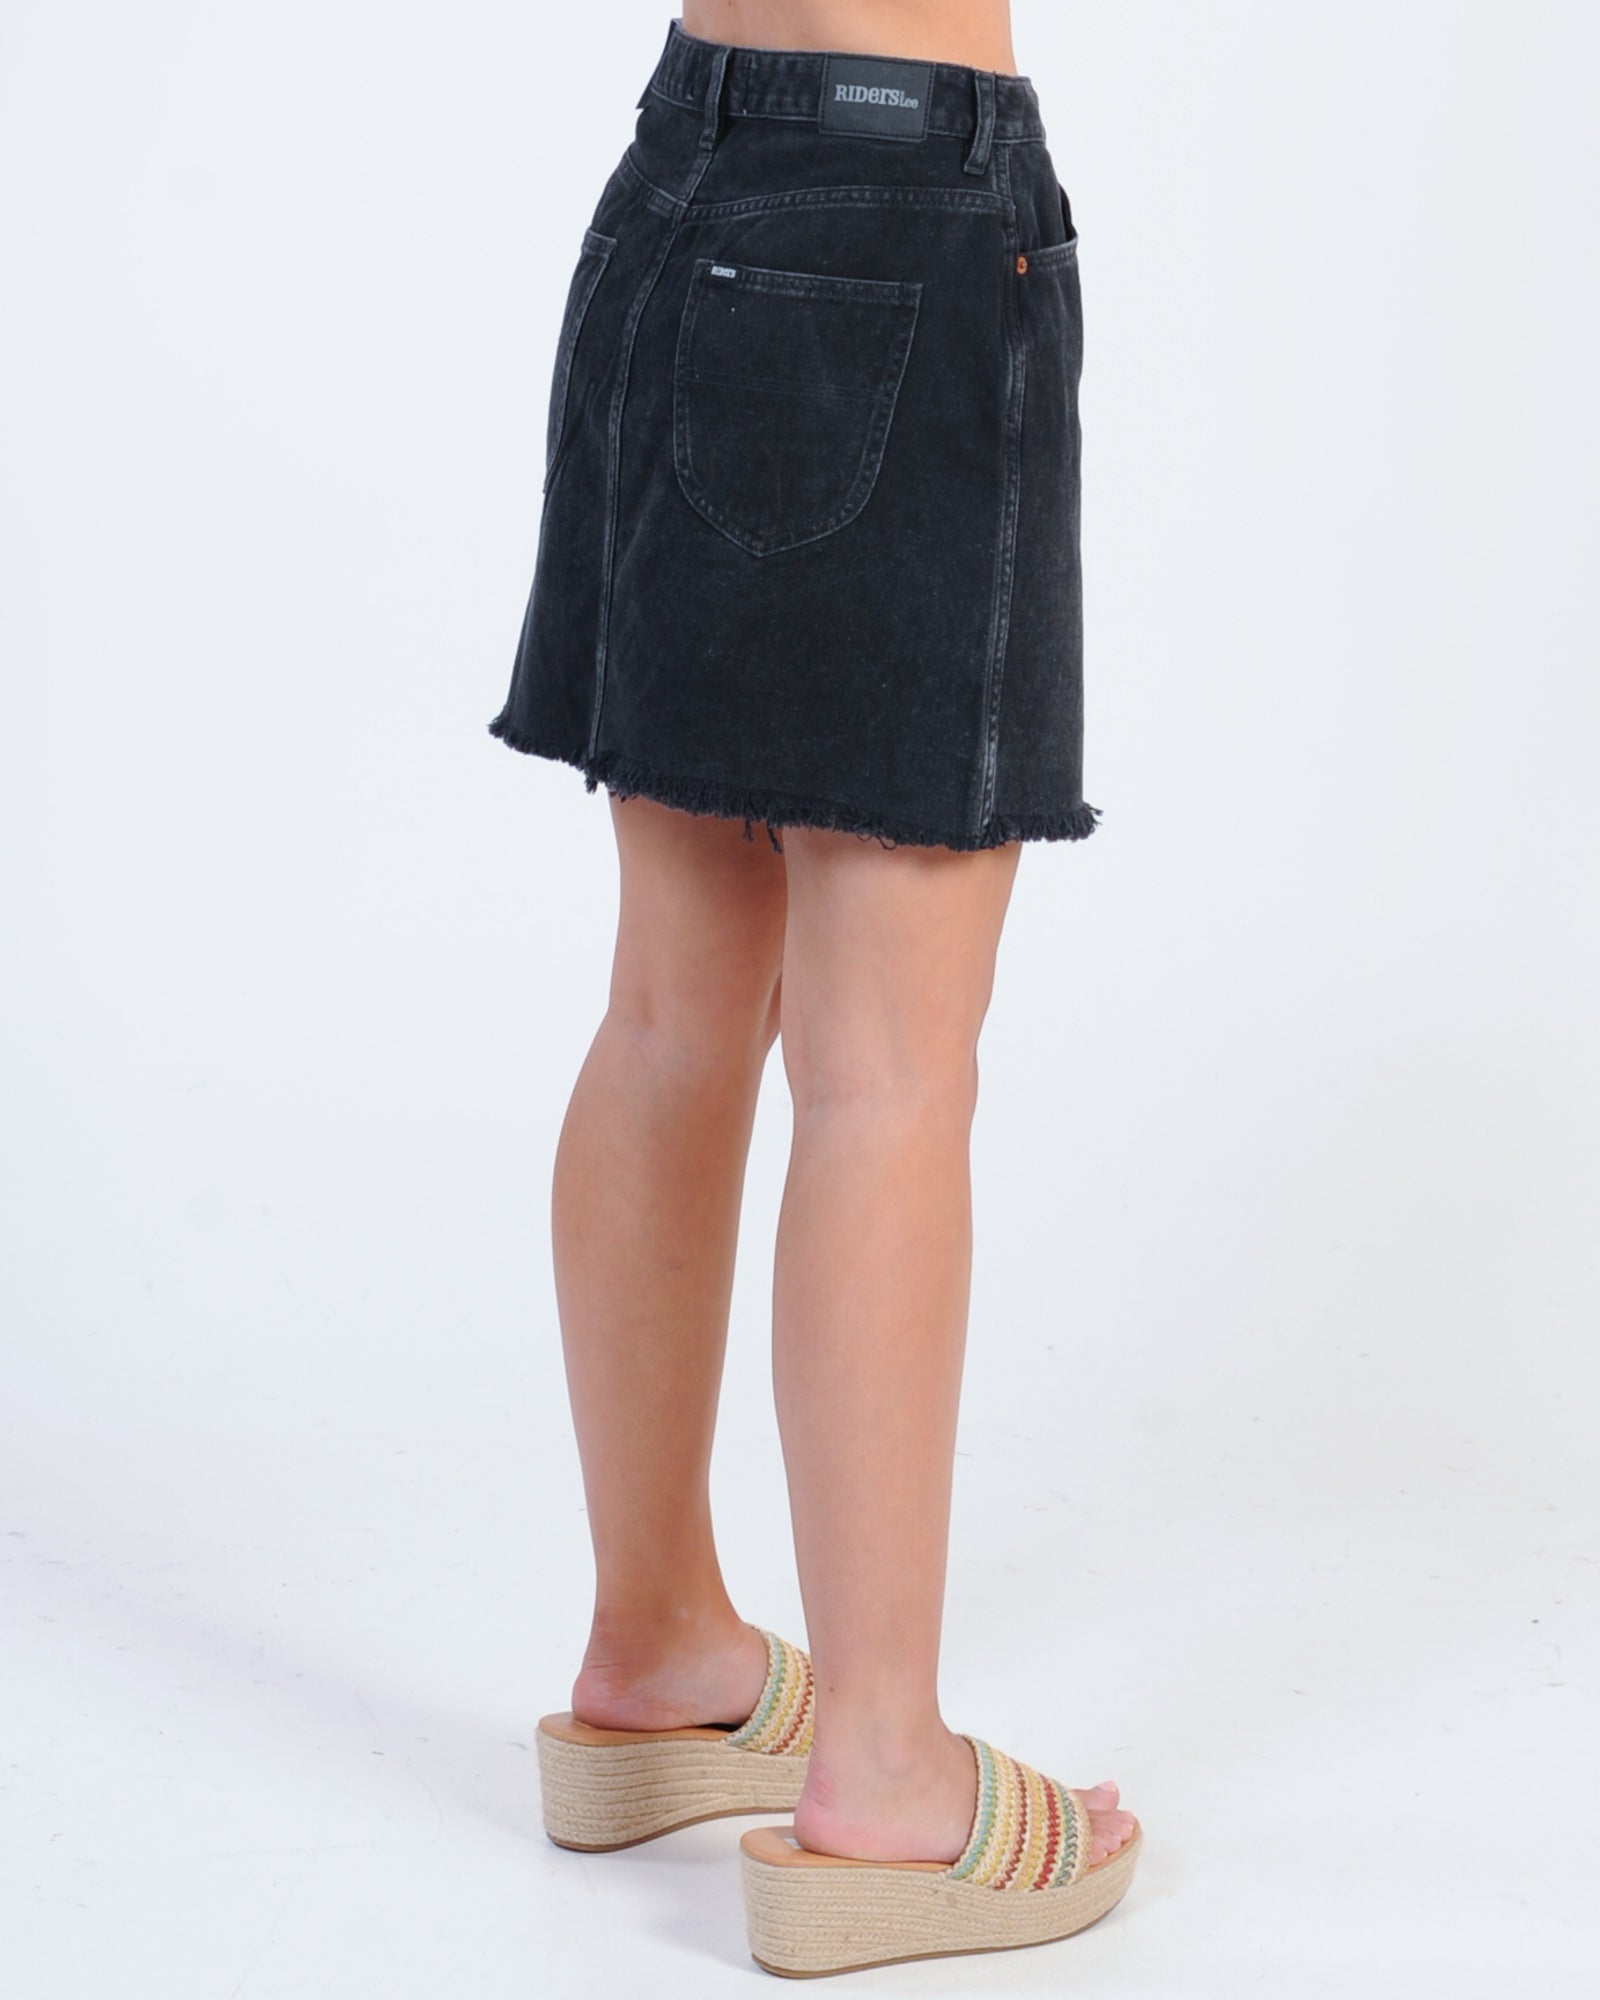 Riders Girlfriend Skirt - Stone Black